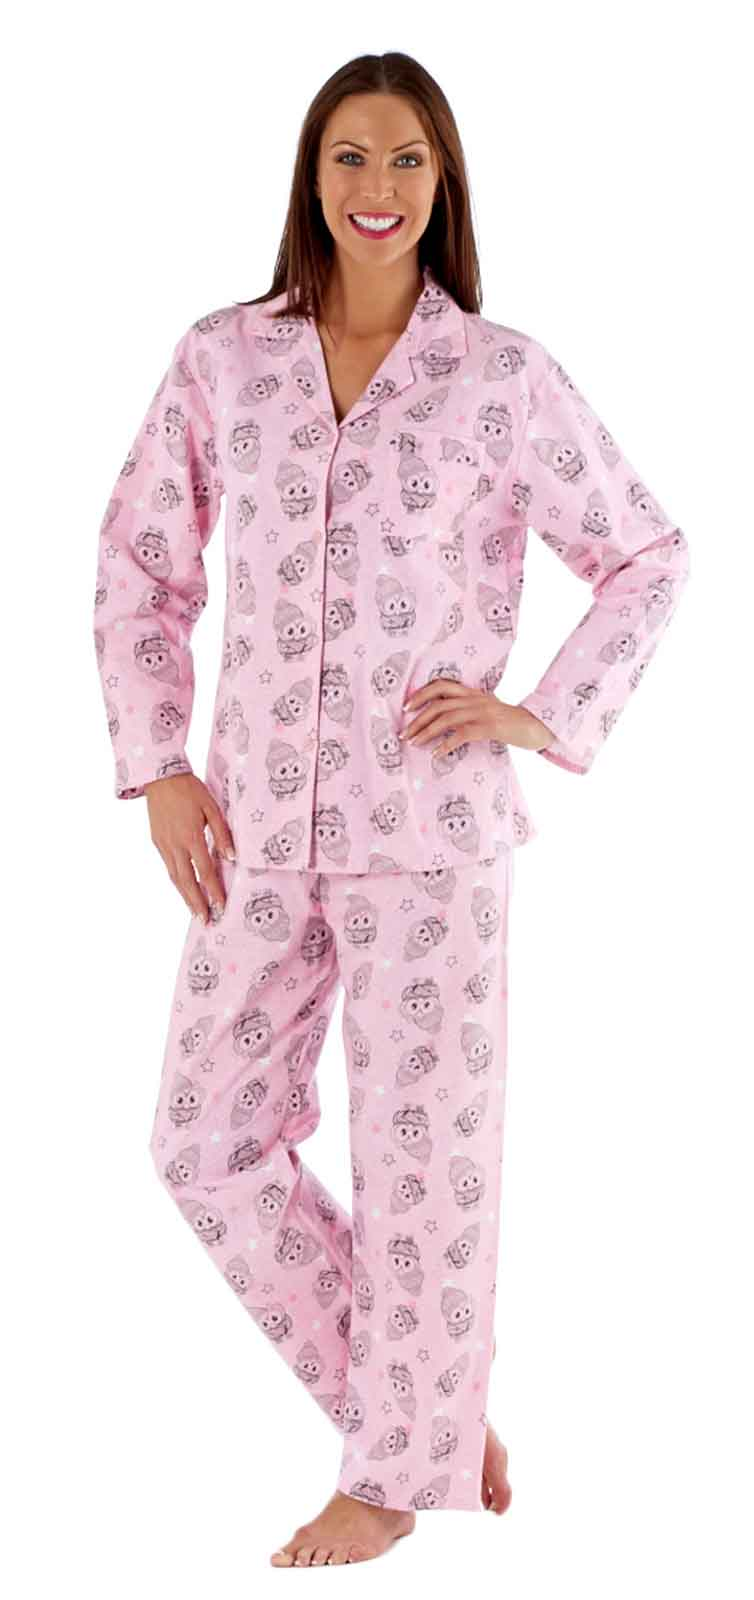 luxury womens fleece pyjamas full length warm winter traditional nightwear size ebay On nightwear winter